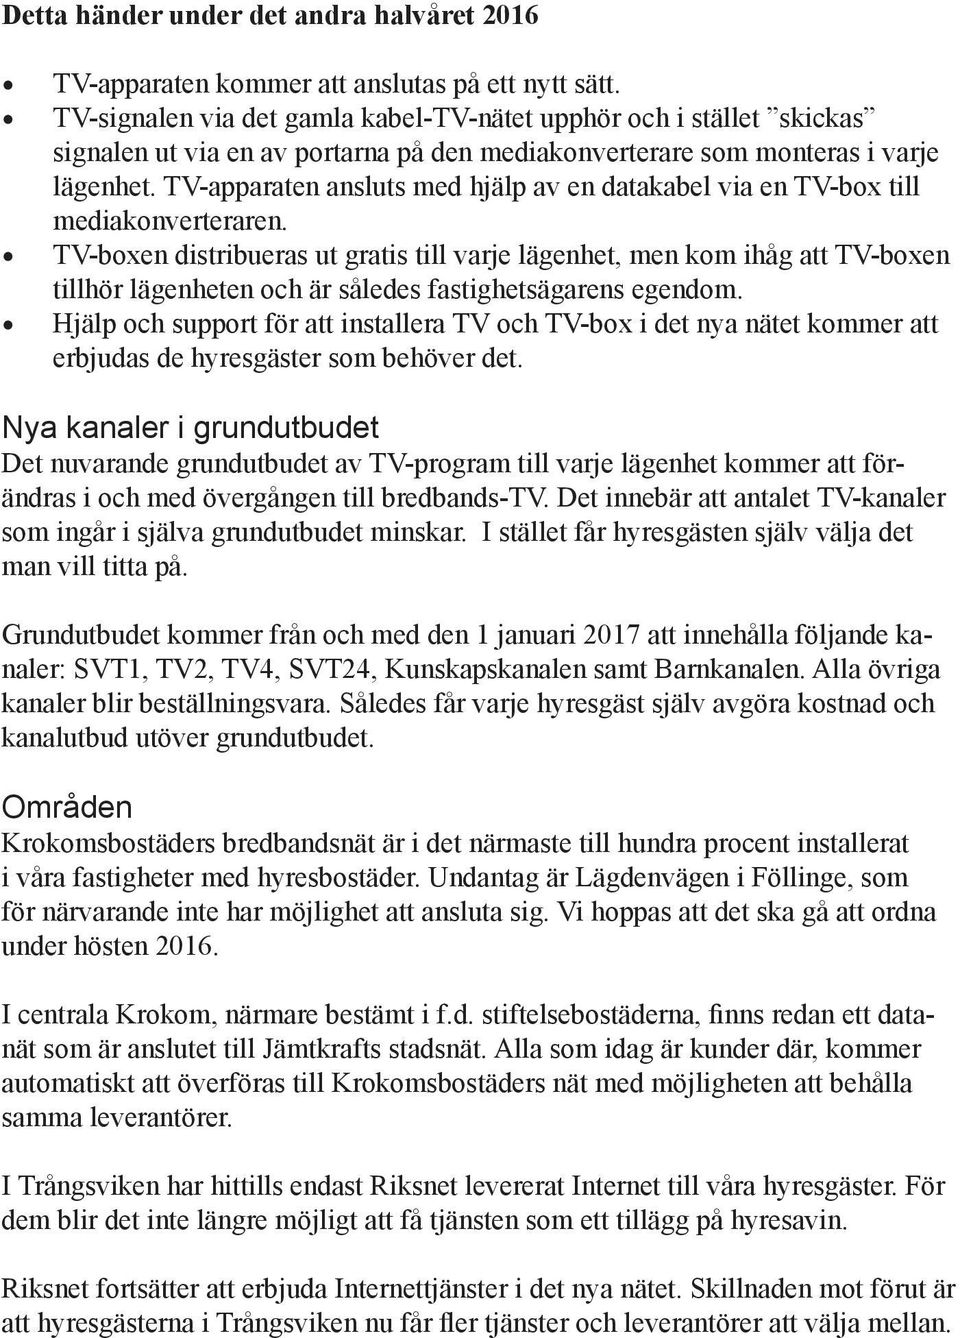 TV-apparaten ansluts med hjälp av en datakabel via en TV-box till mediakonverteraren.